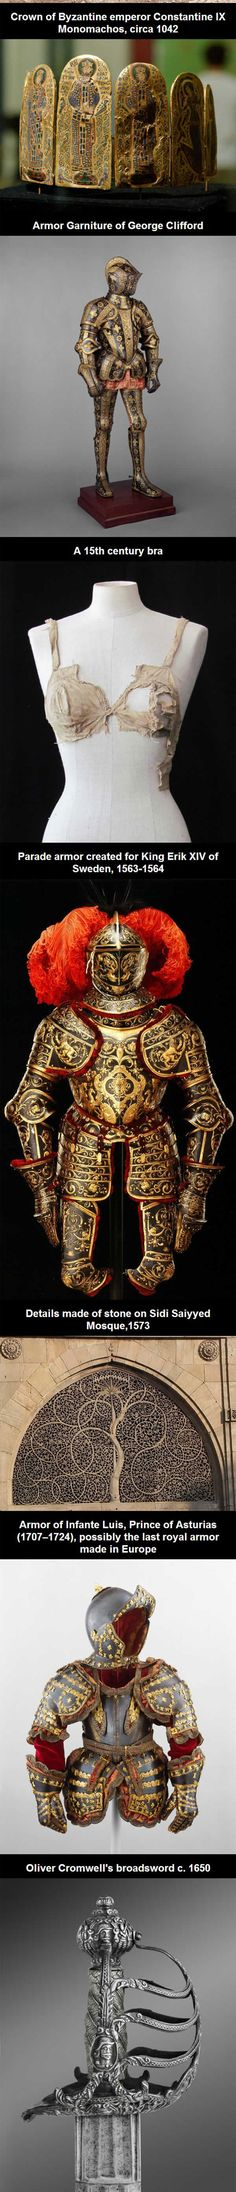 cool-history-objects-important-humanity-armor